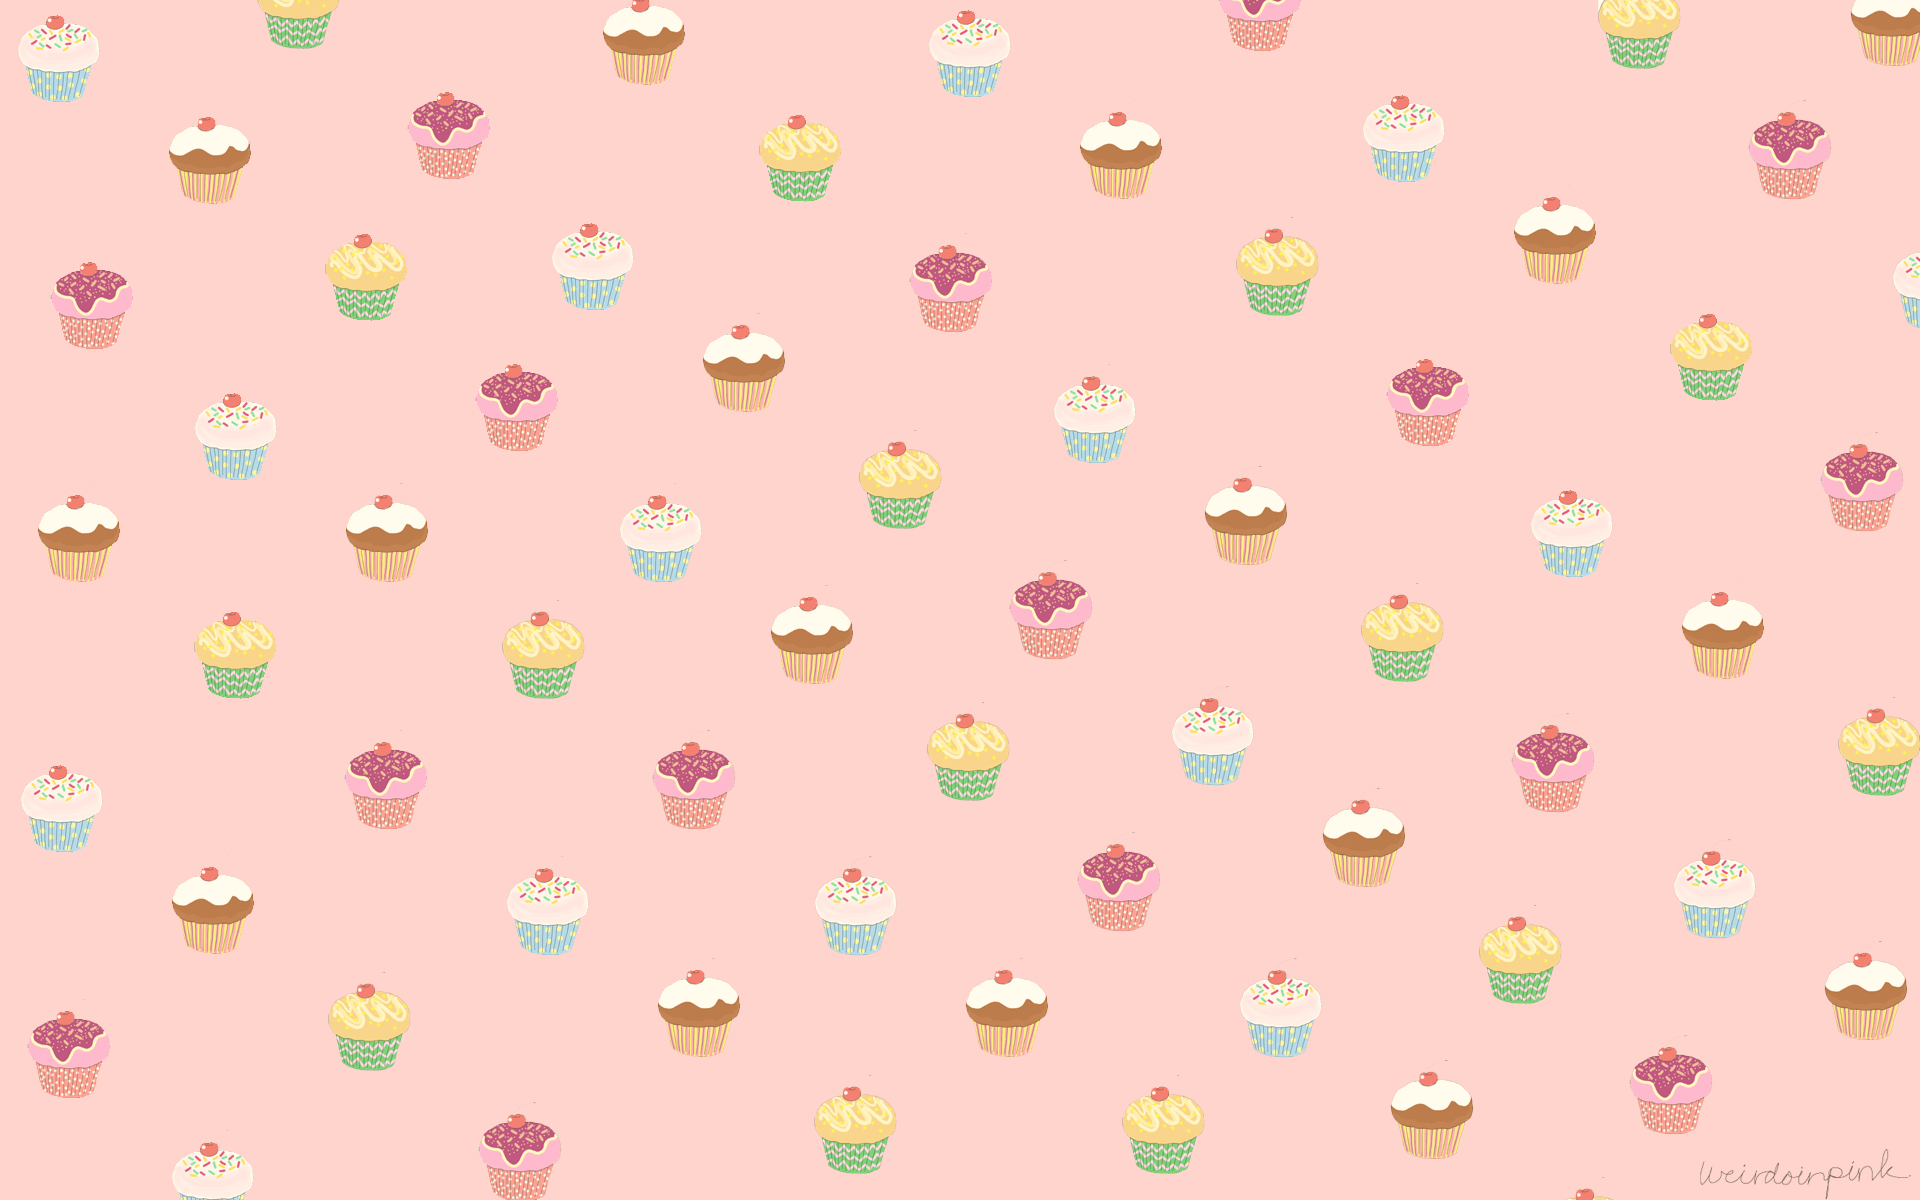 Cup Cake Wallpapers - Wallpaper Cave